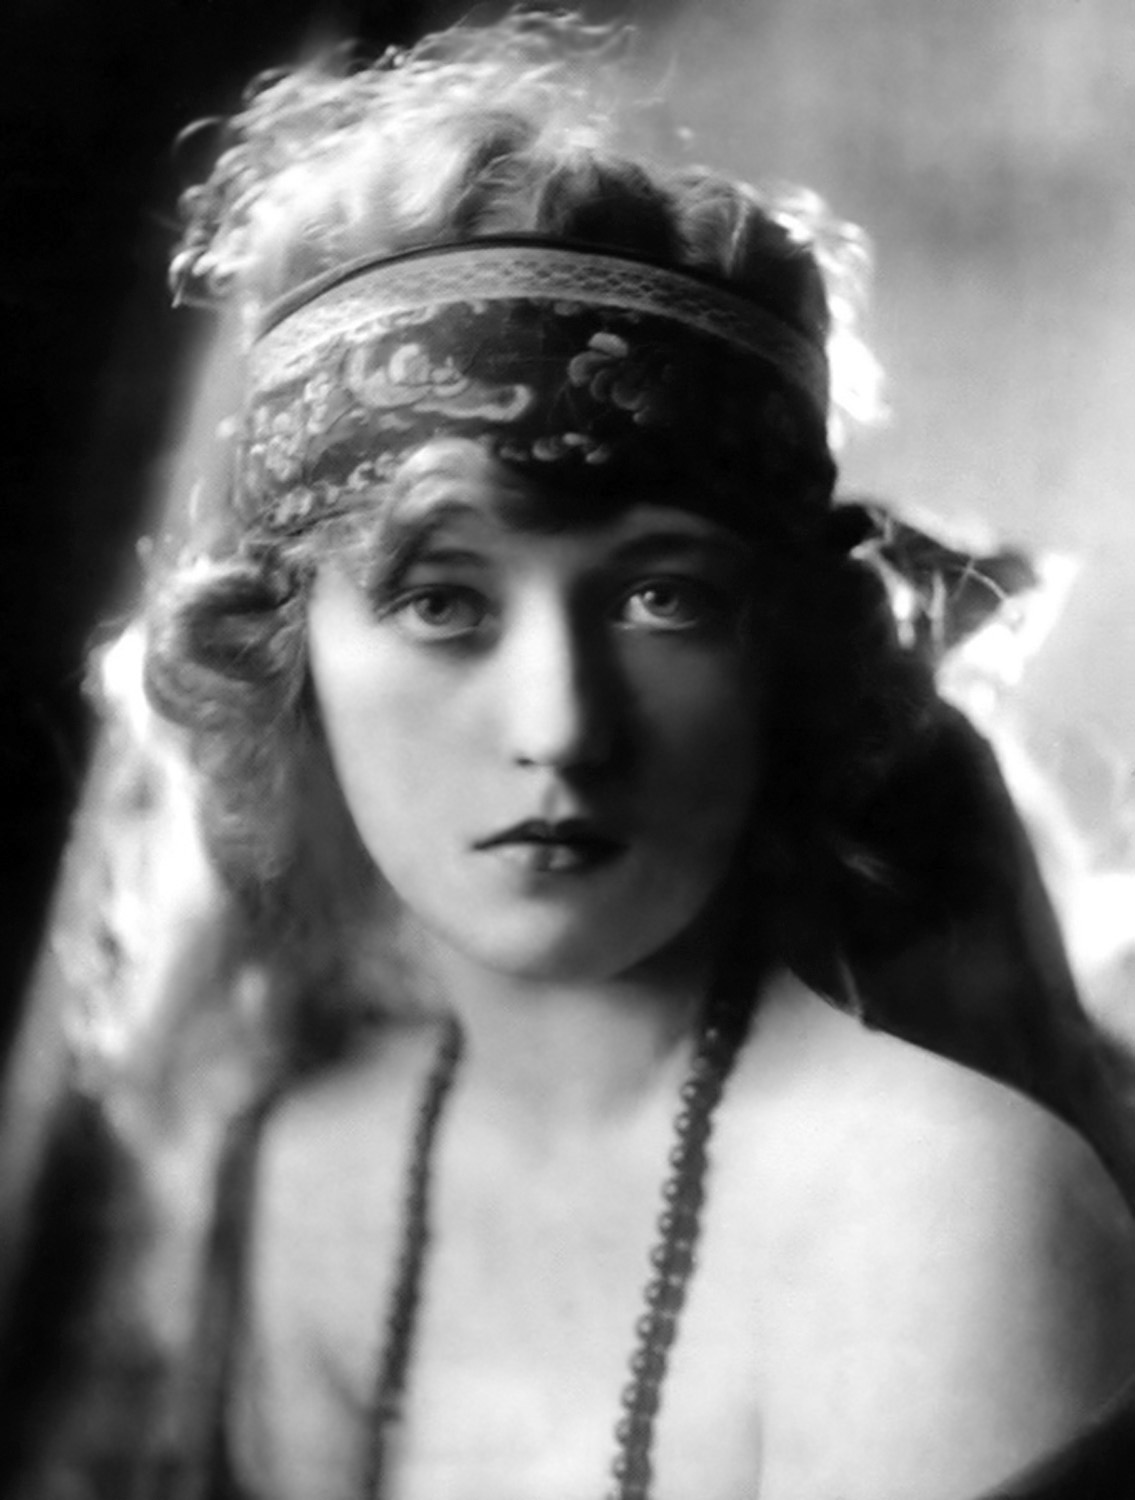 Marion Davies was one of the most popular movie stars of the early 20th century. In 1931, Davies got into trouble with the  IRS owing nearly 1 million dollars. Davies tax problems continued, but unlike Al Capone, she never went to jail.